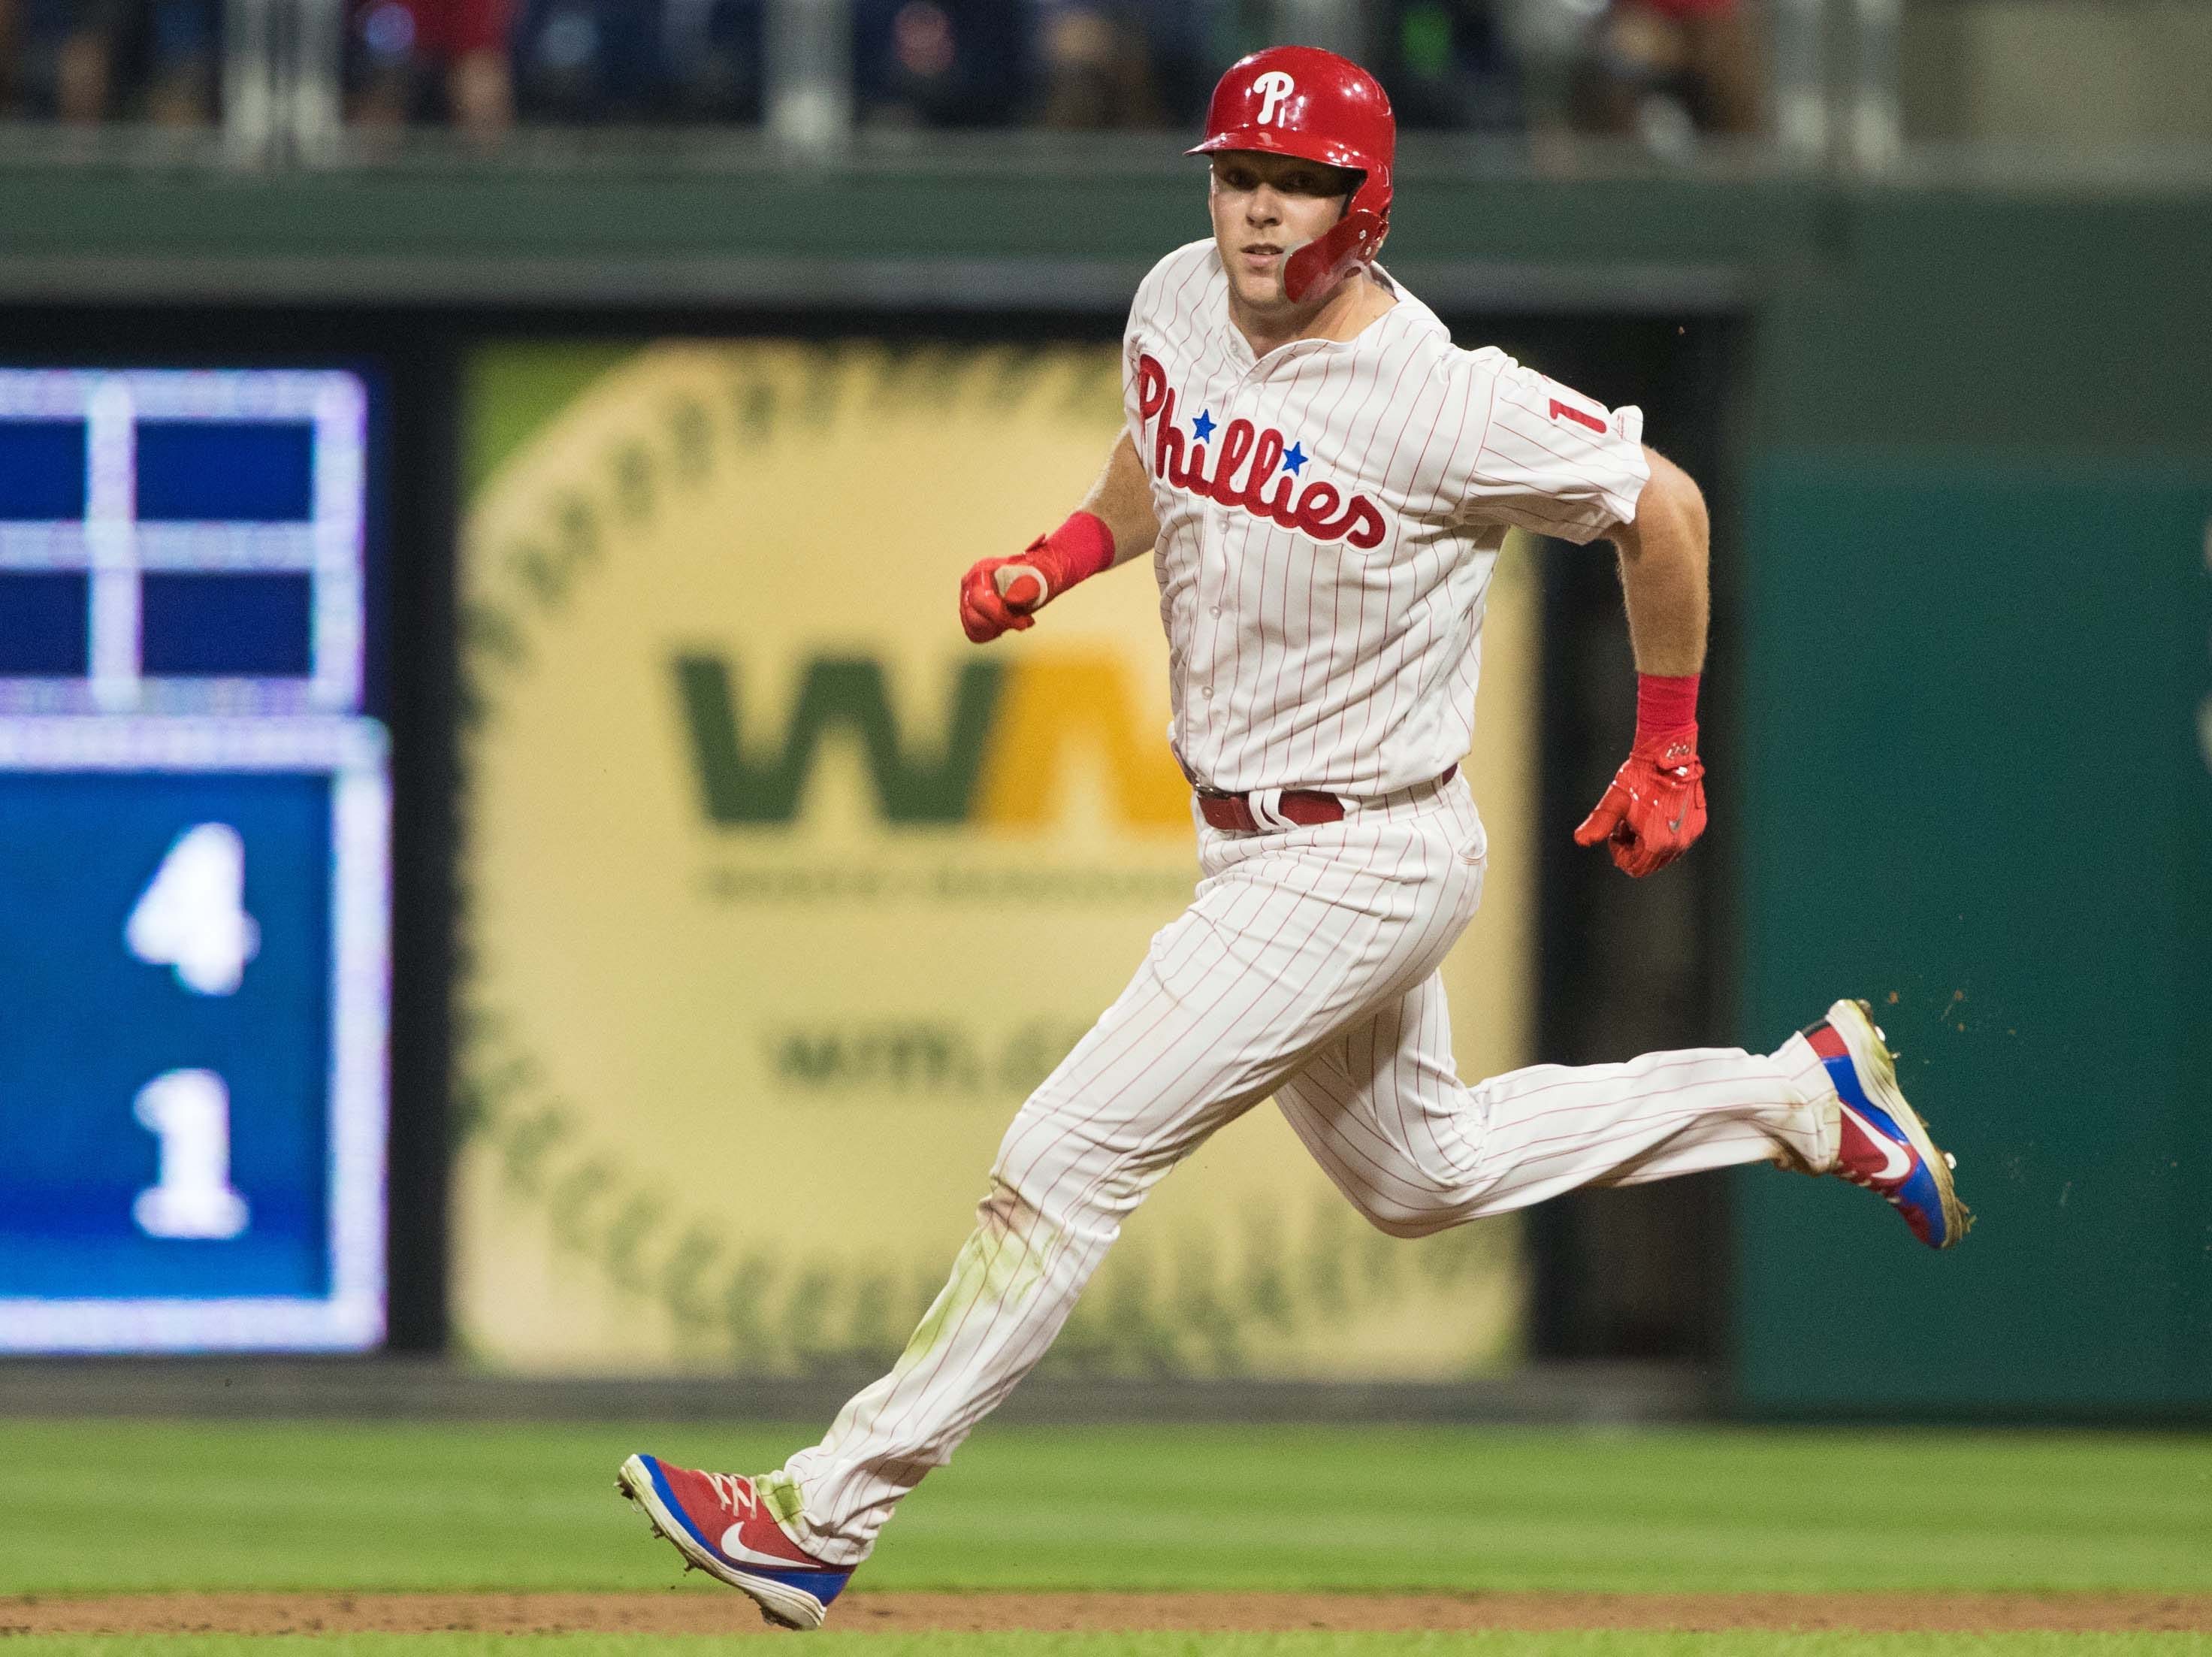 46. Rhys Hoskins, Philadelphia Phillies first baseman/outfielder.